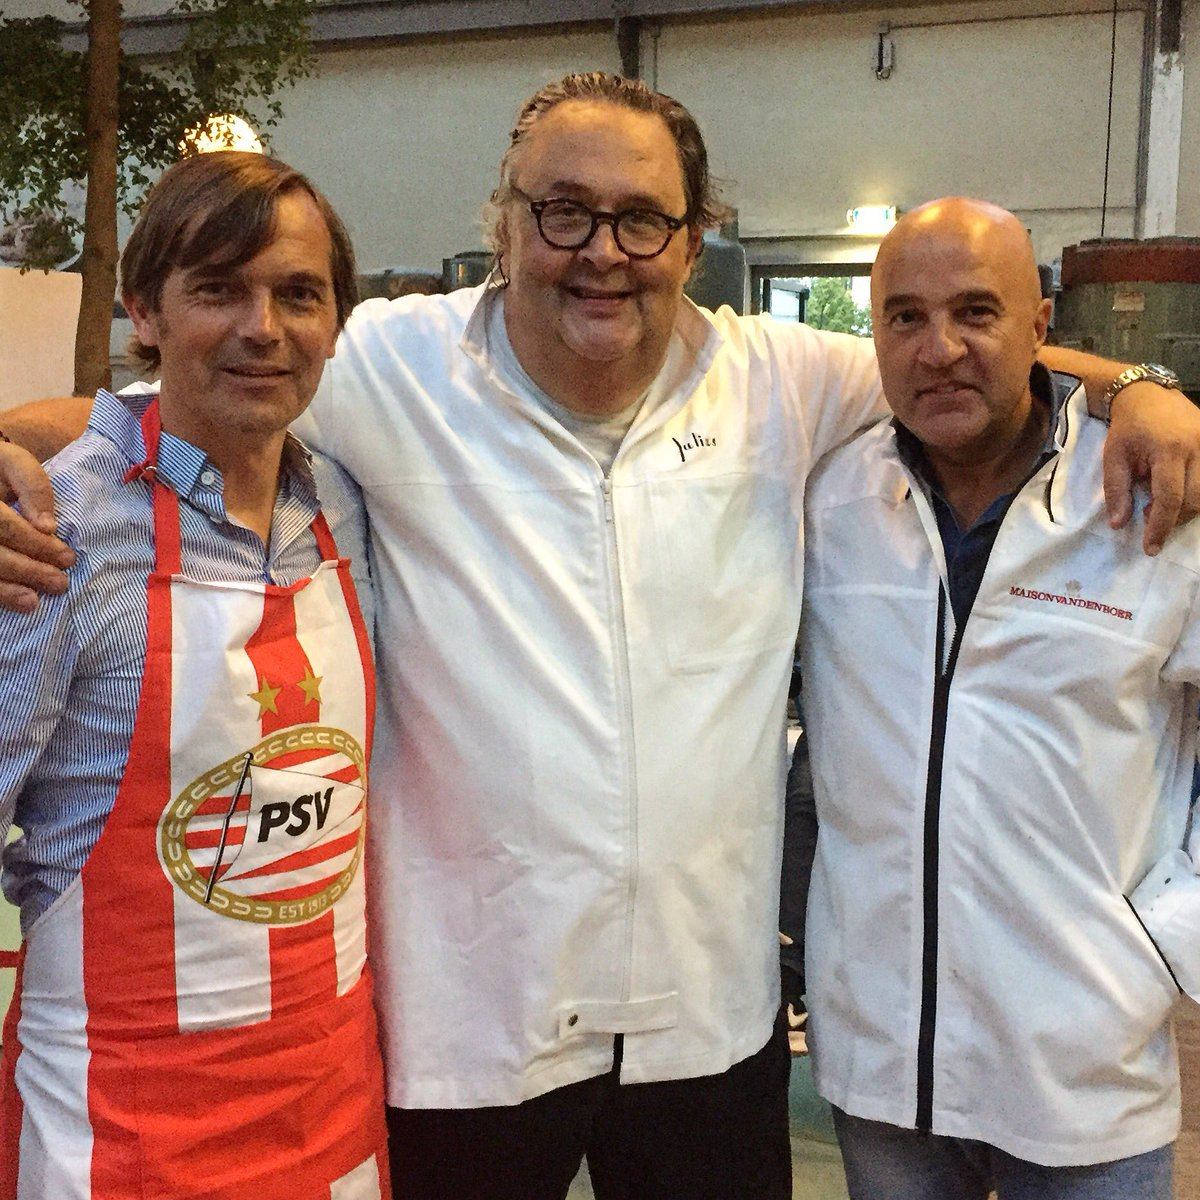 cooking with @phillipcocu8 and #@johnvandenheuvel with @psv selection @dekookfabriek #eindhoven <br>http://pic.twitter.com/YW0IvPP5ki